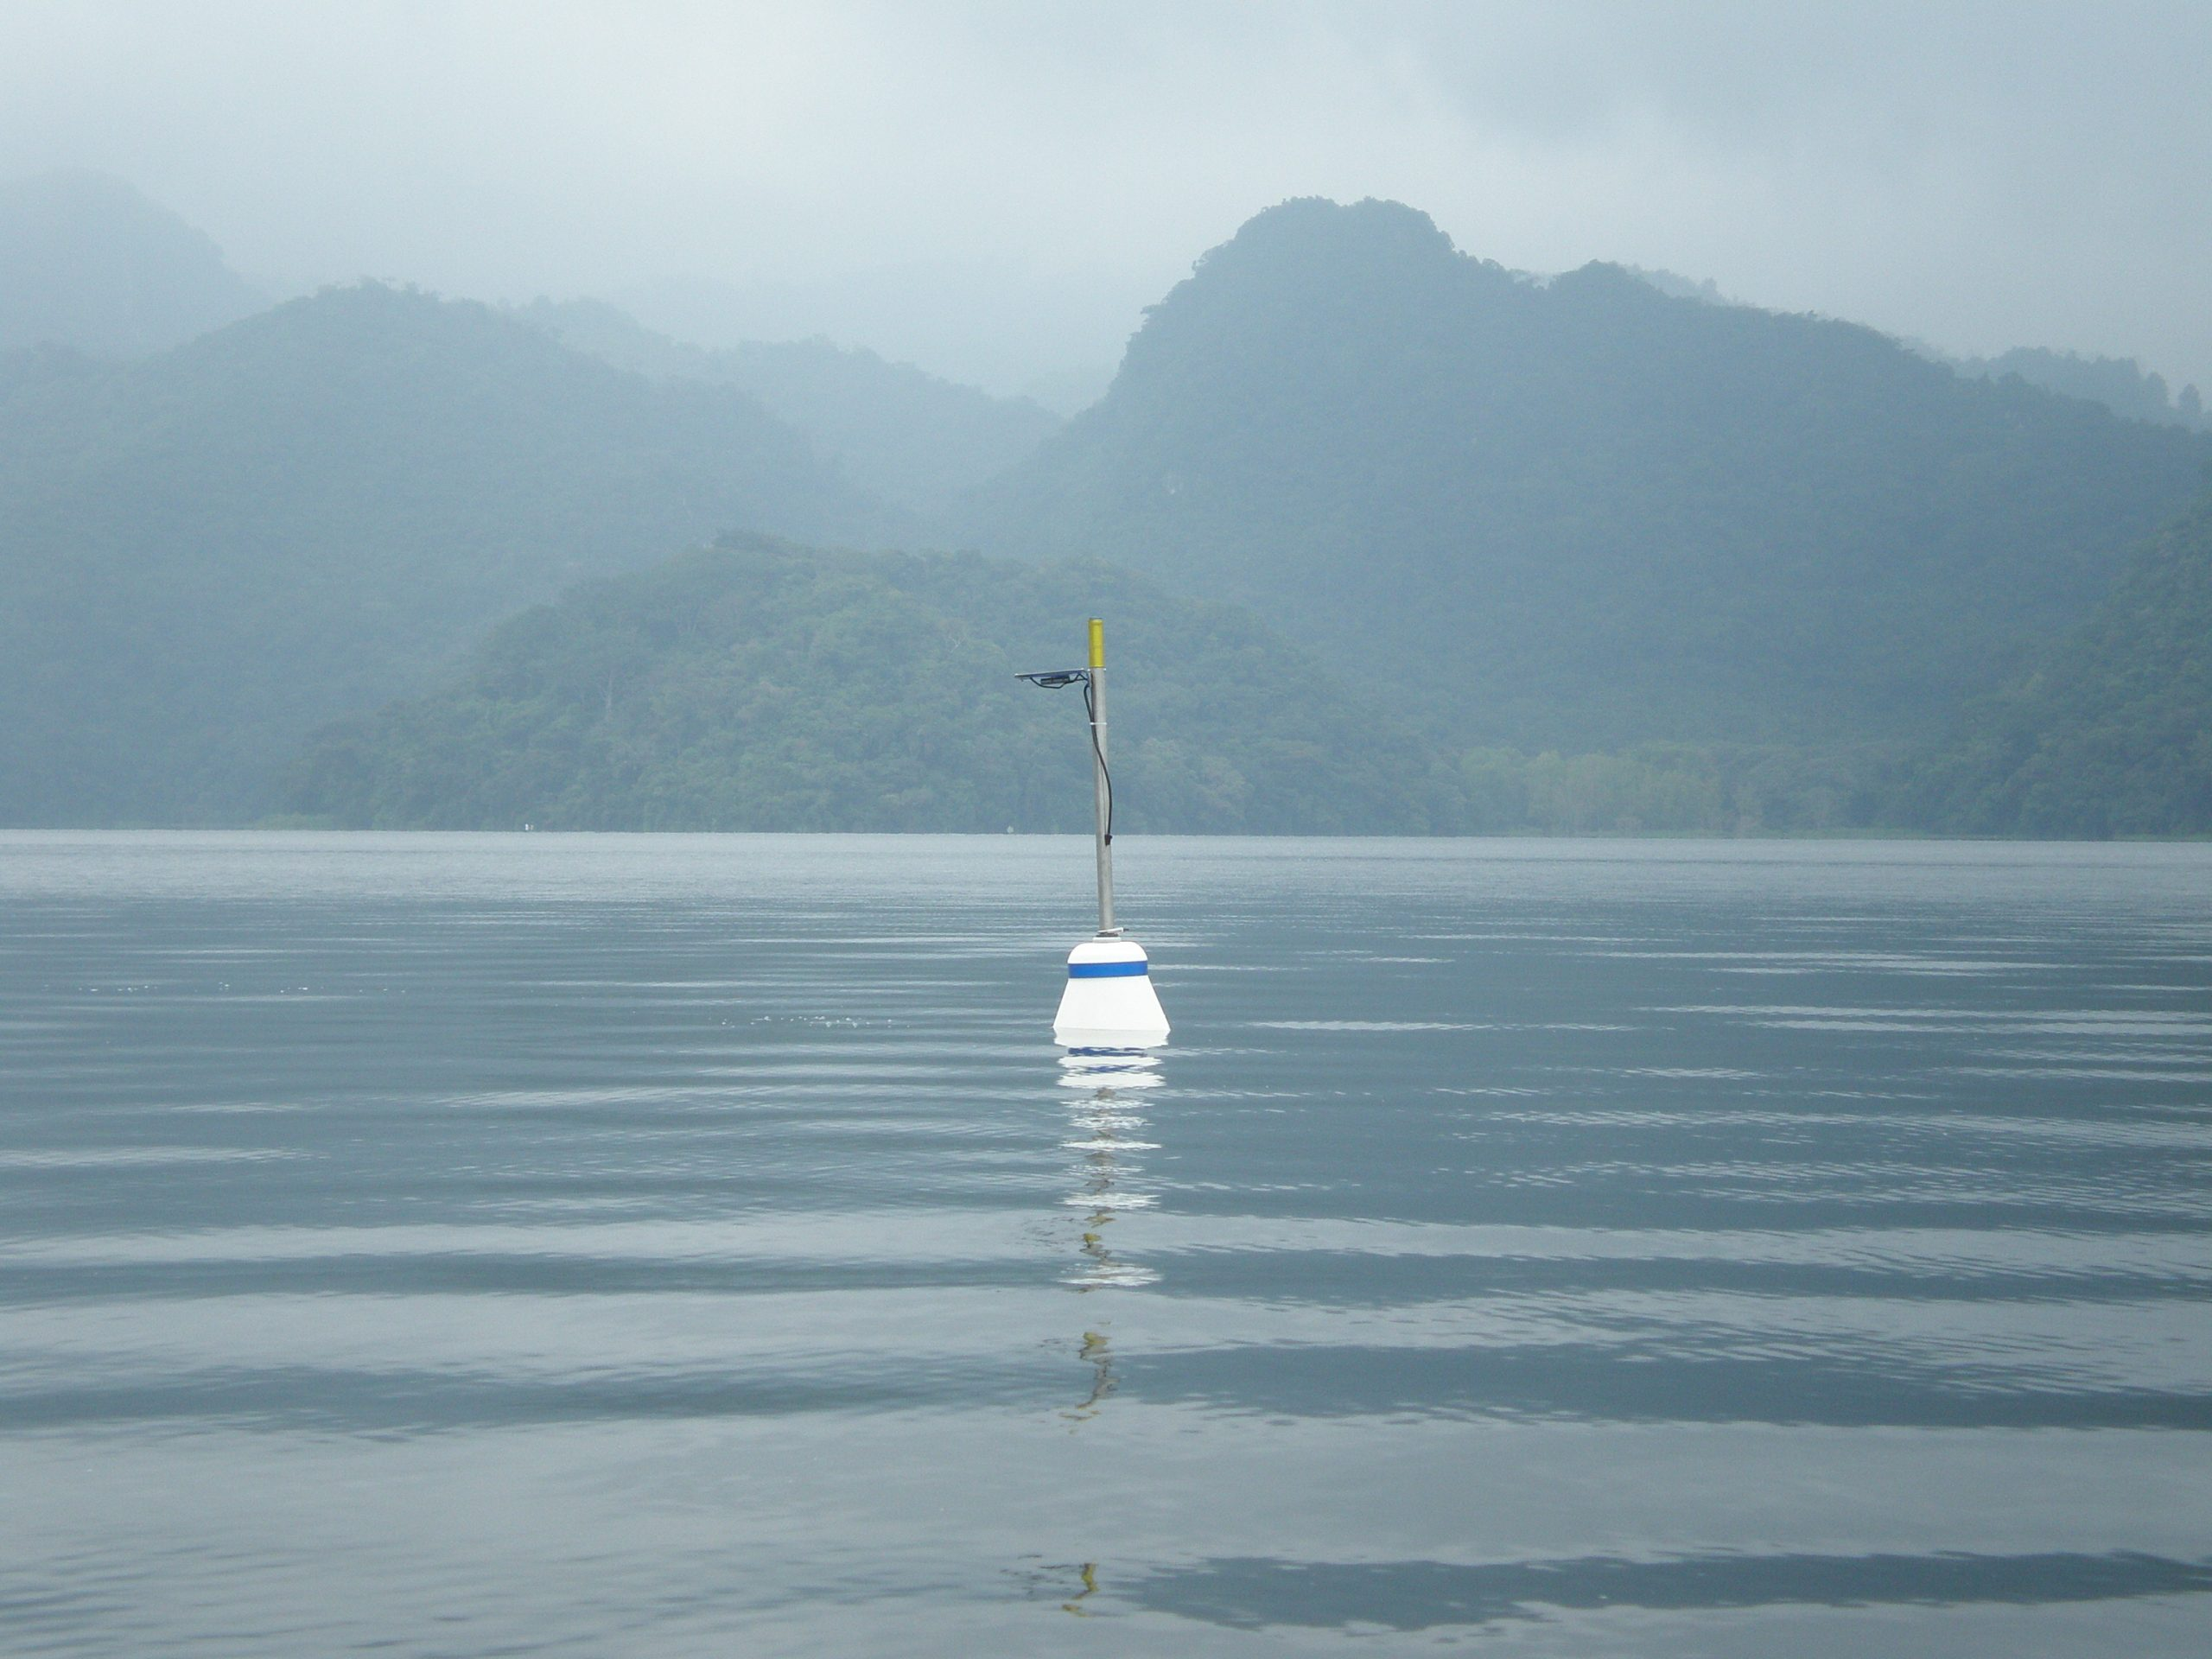 Lindorm's LogDator Buoy deployed in Lago Yojoa